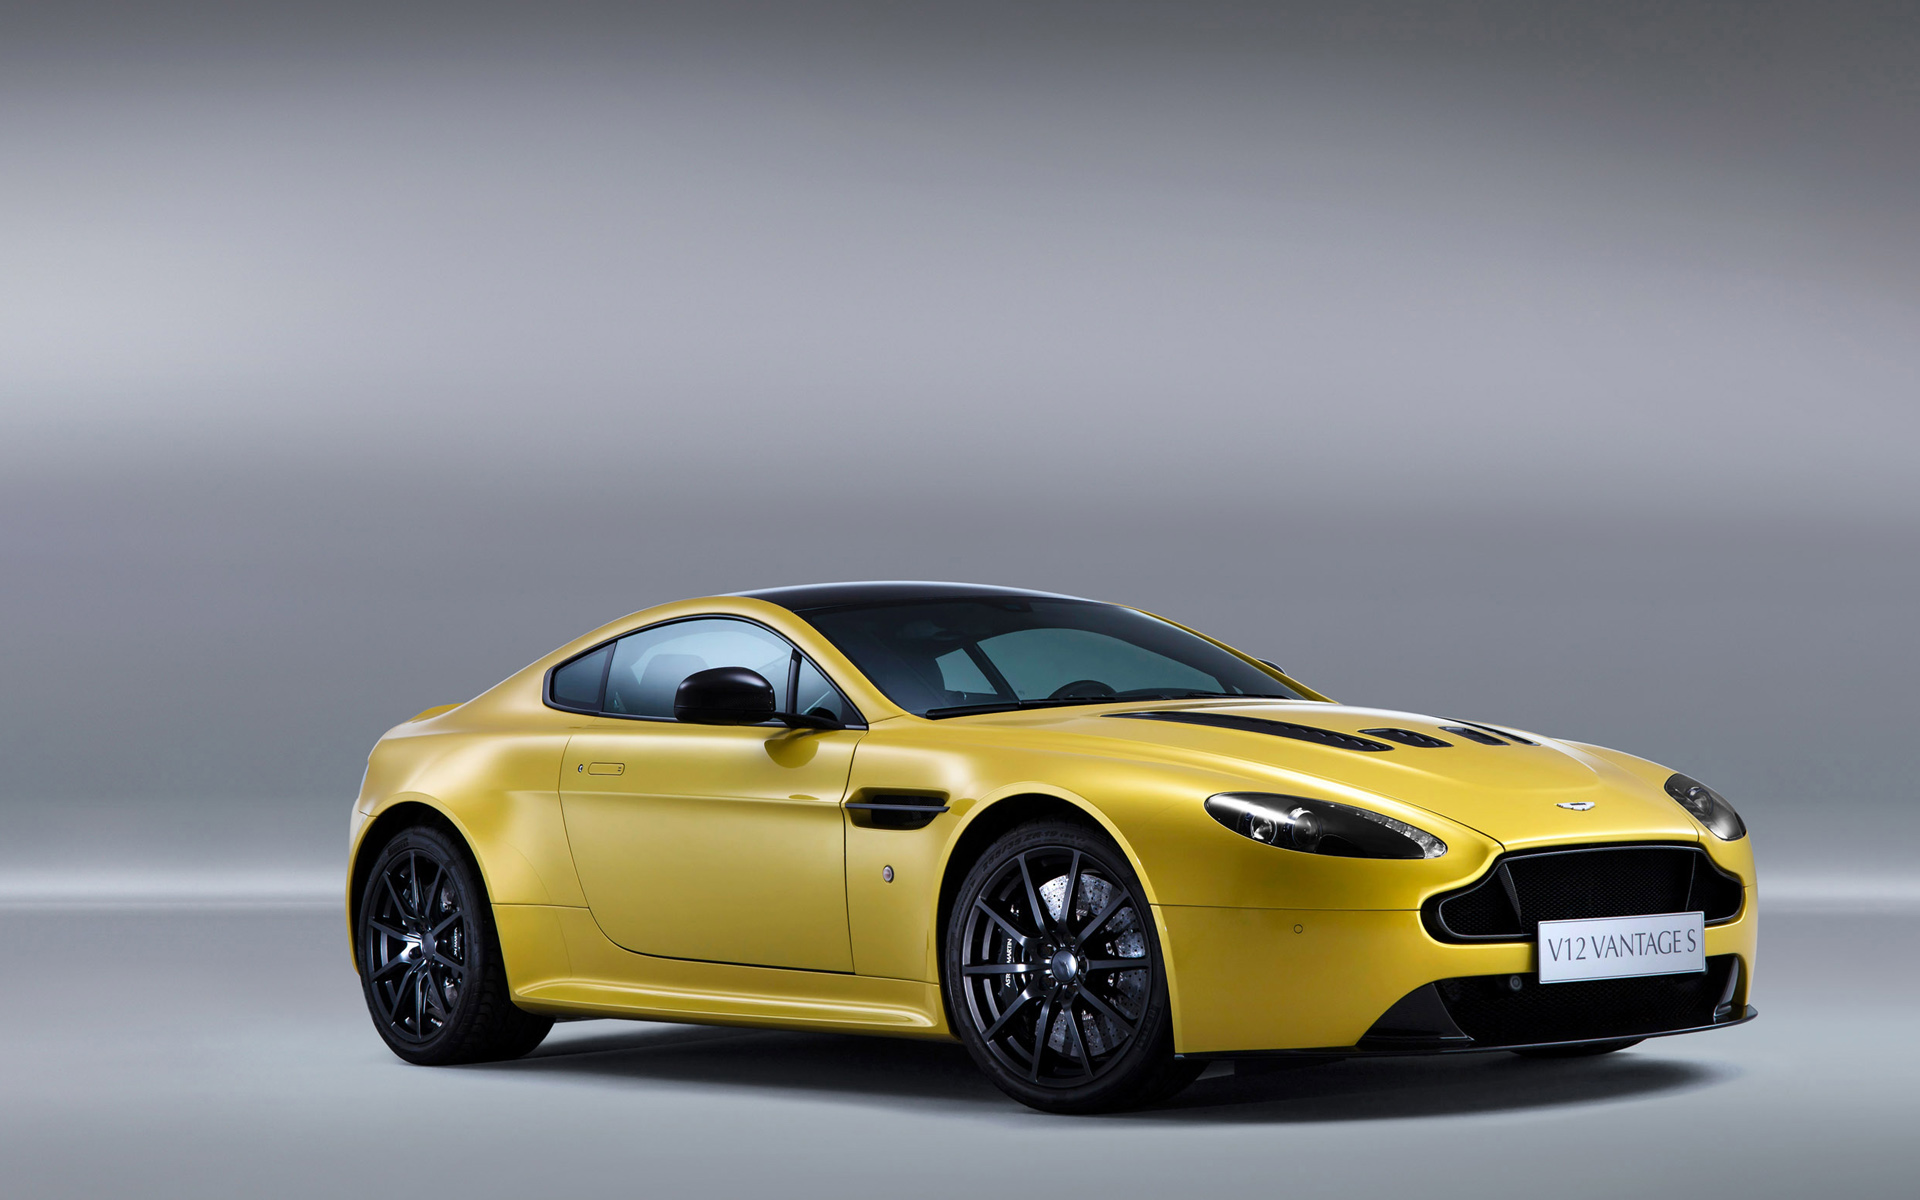 aston martin v12 vantage s 2014 wallpaper hd car wallpapers id 3457. Black Bedroom Furniture Sets. Home Design Ideas